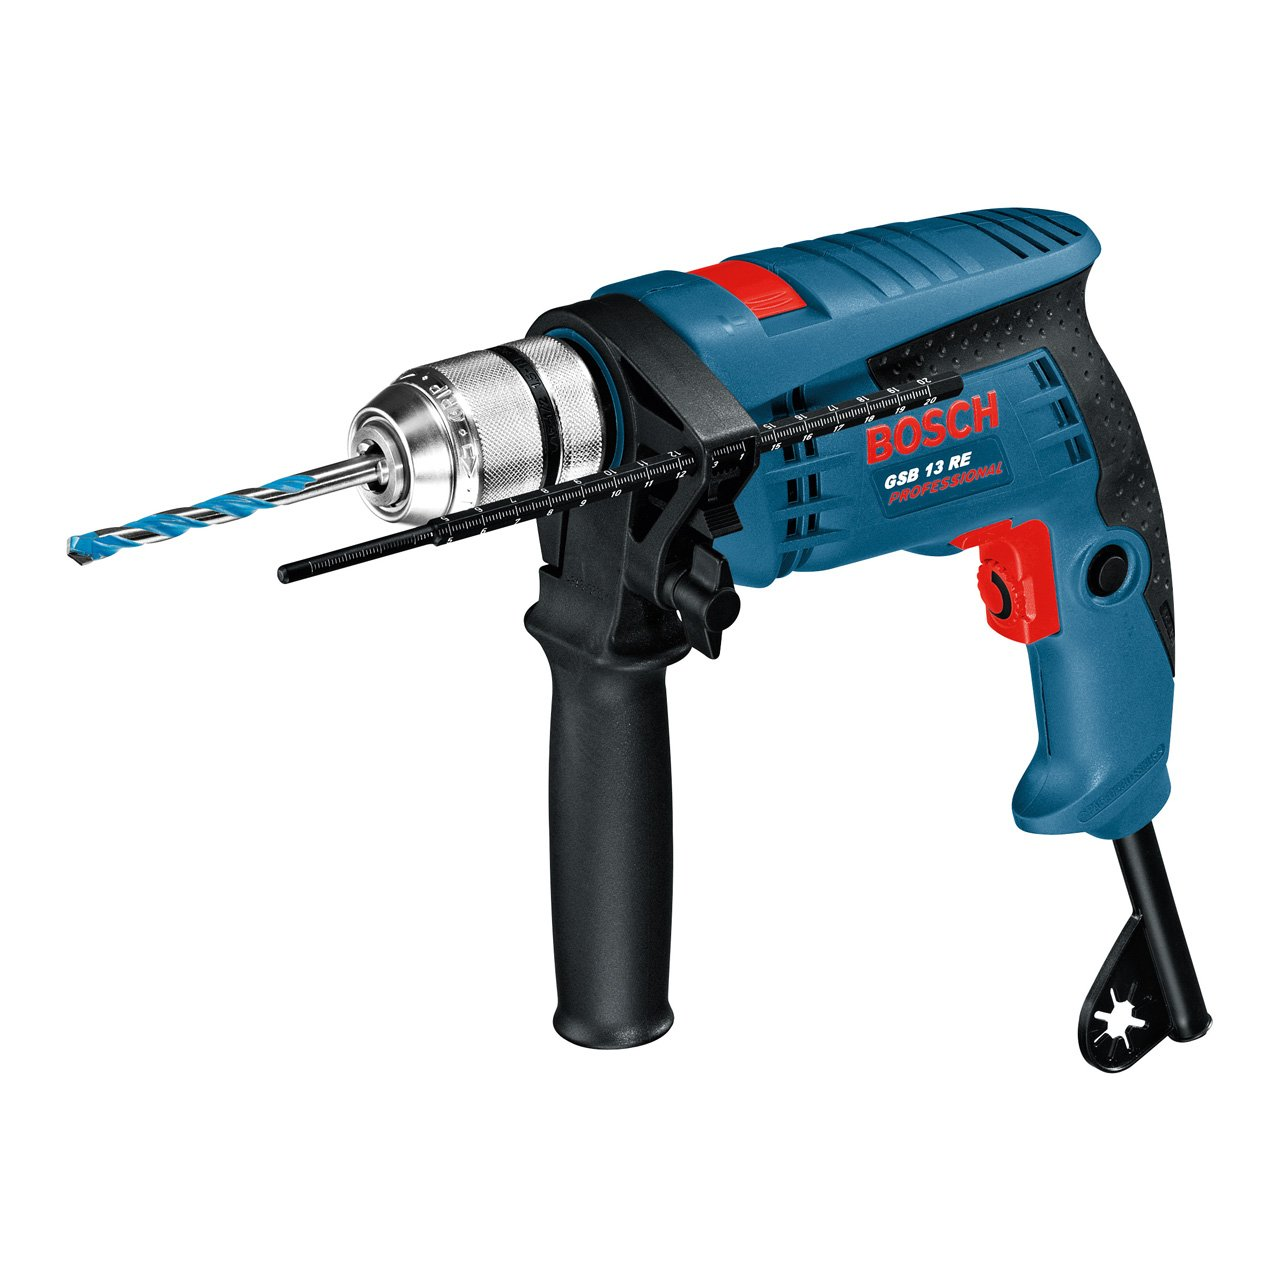 Bosch Professional GSB 13 RE Corded 240 V Impact Drill 0601217170